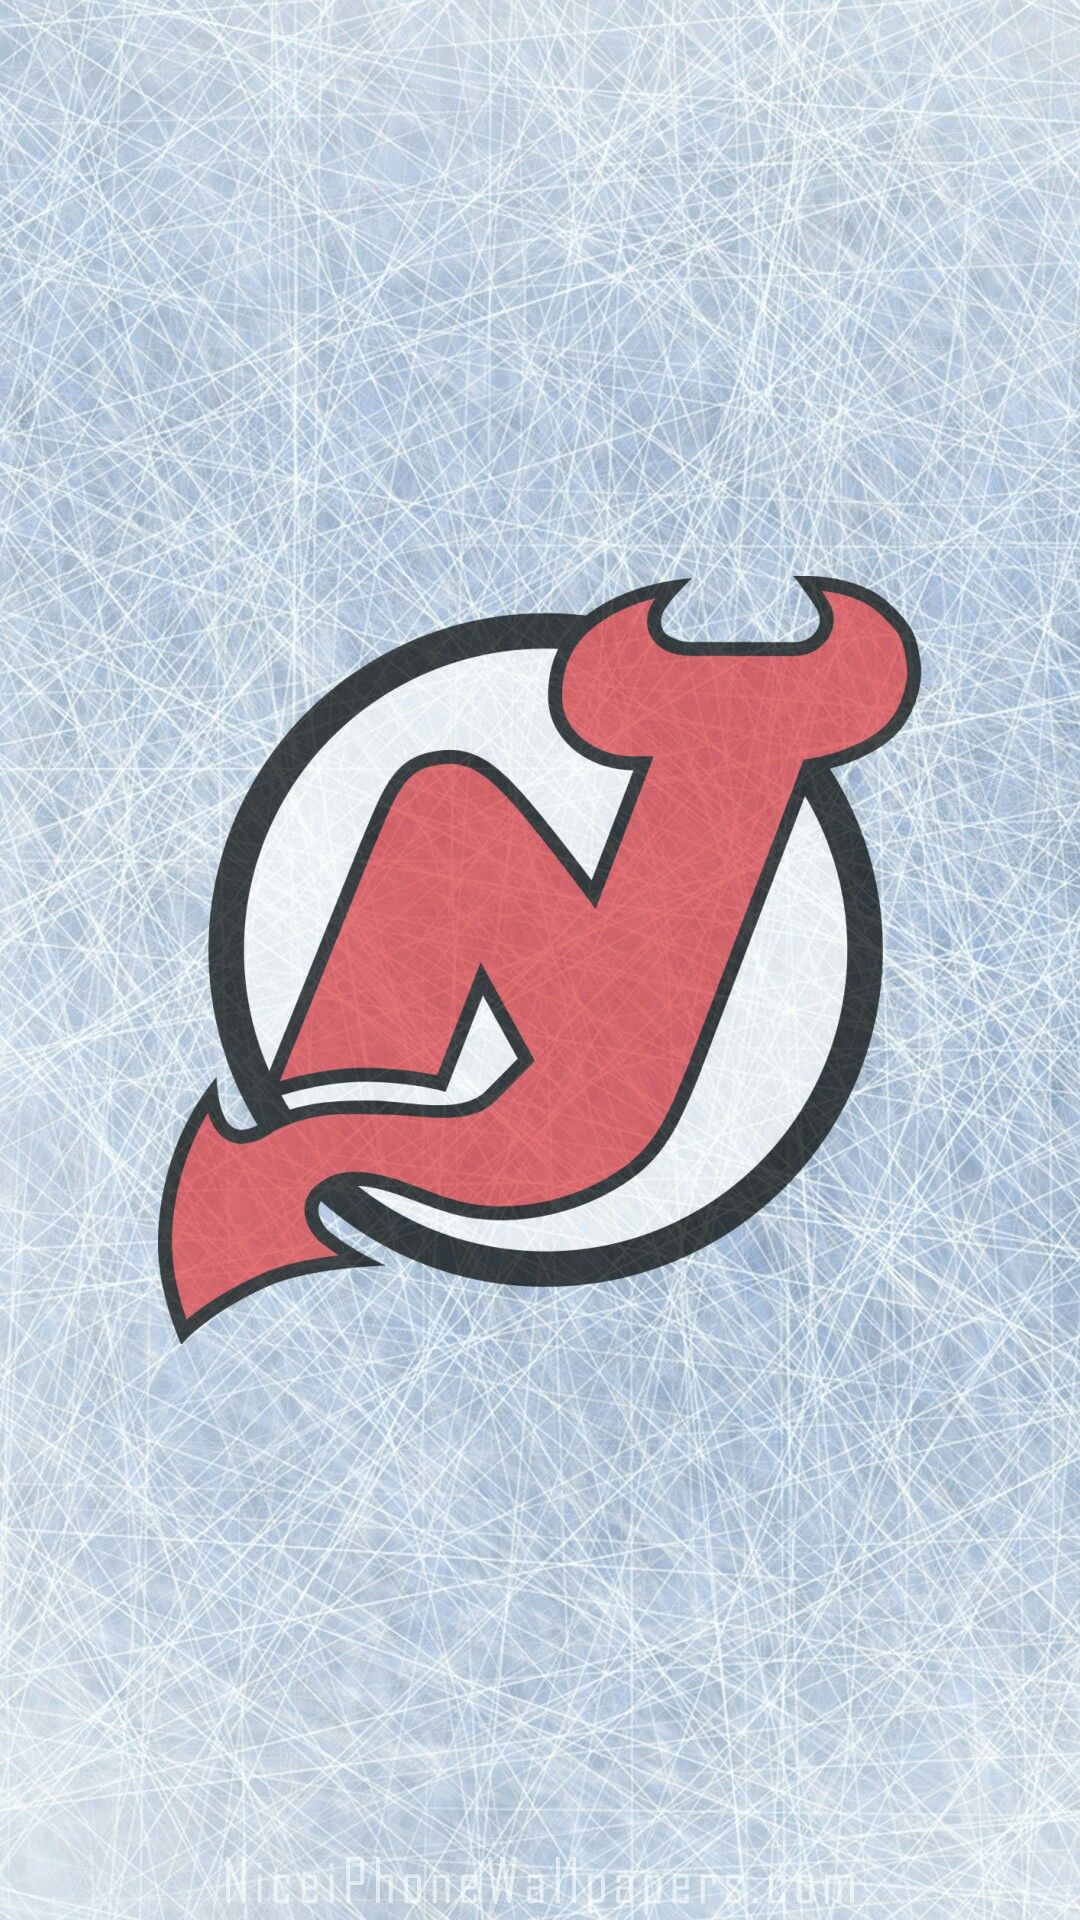 New Jersey Devils New Jersey Devils Nhl Logos Iphone Wallpaper Sports